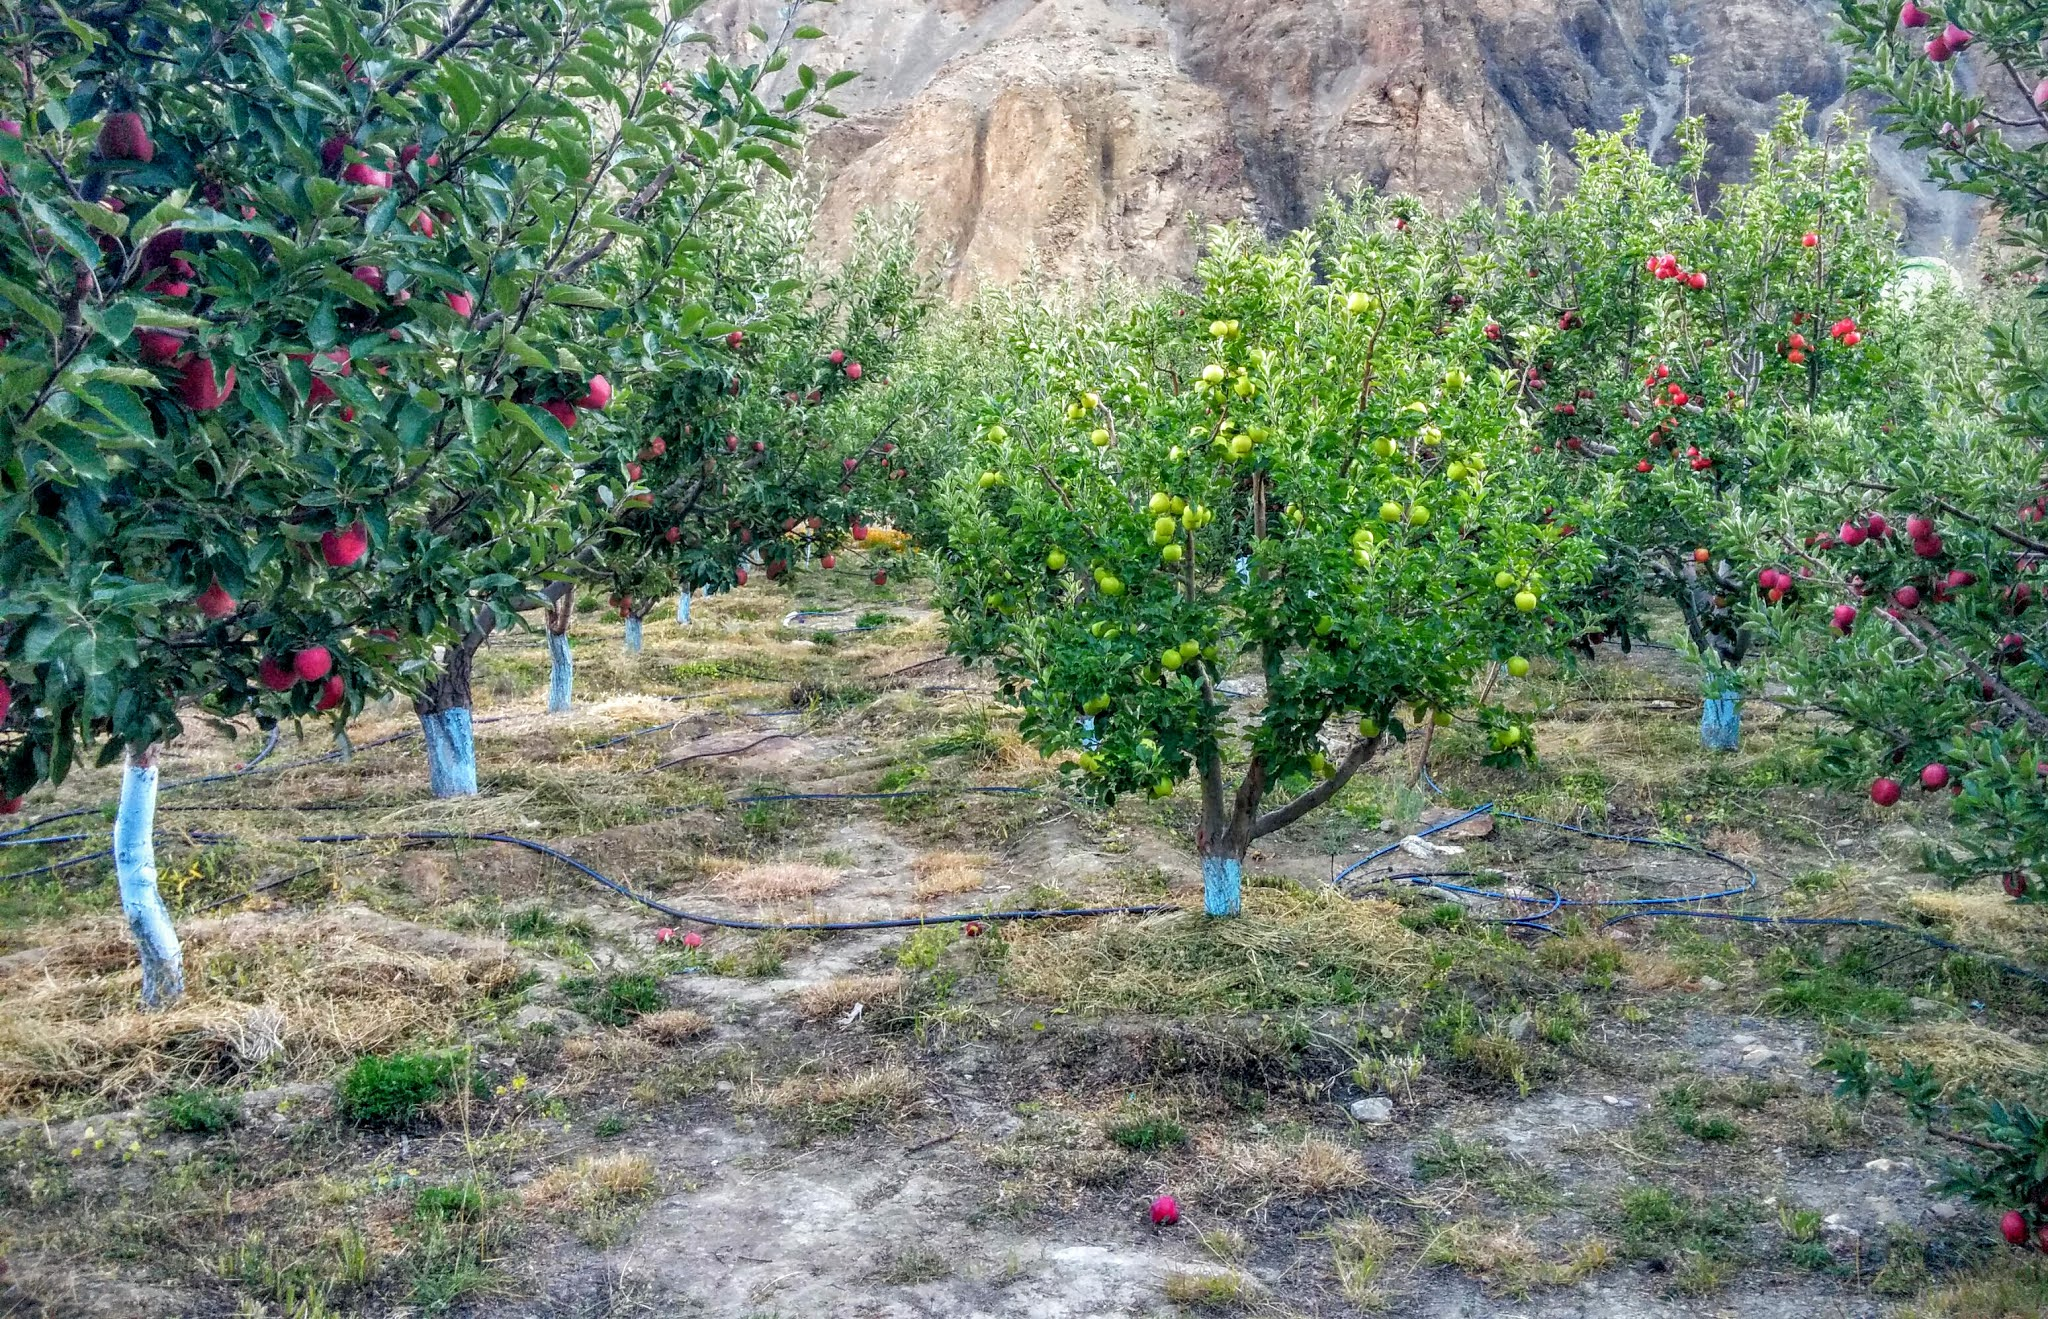 Inside an apple orchard at Tabo, Himachal Pradesh